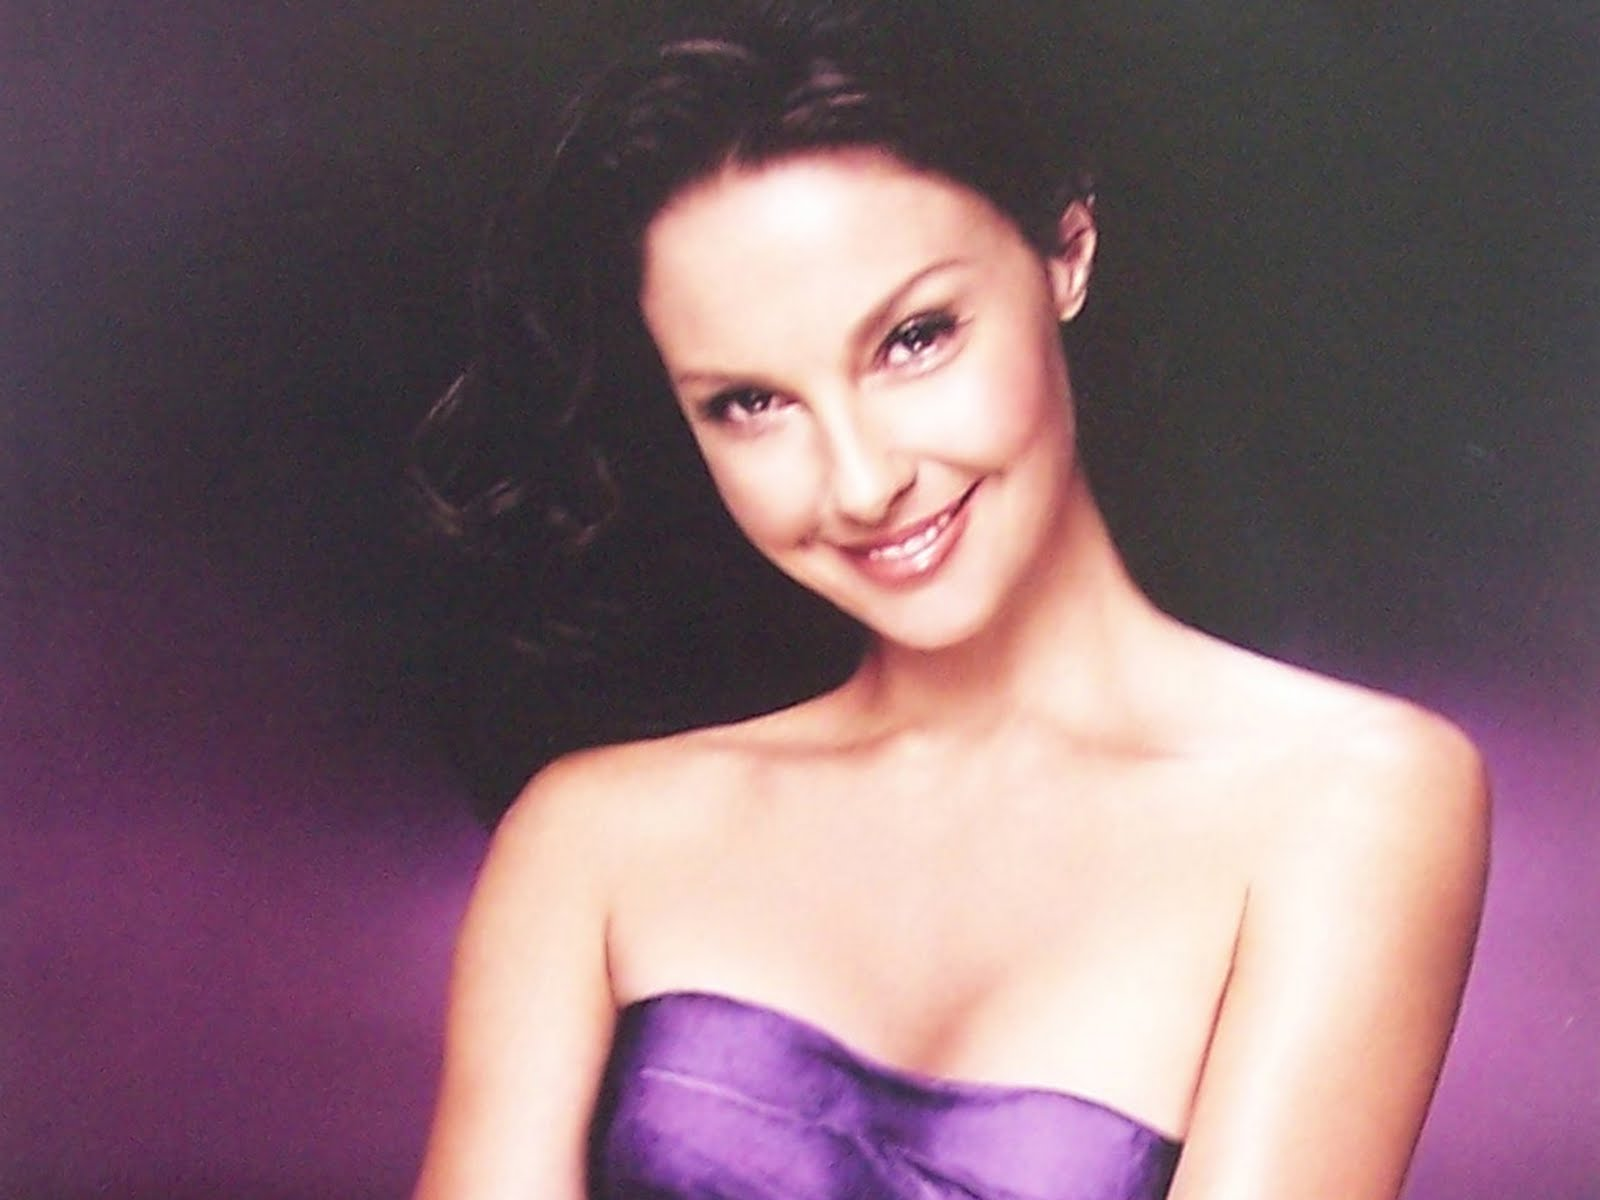 http://3.bp.blogspot.com/-vaYrWyqtCVQ/TbXmSpMFLsI/AAAAAAAAN6I/cYpGpAaf6z0/s1600/american_TV_and_film_actress_Ashley_Judd_wallpapers.jpg